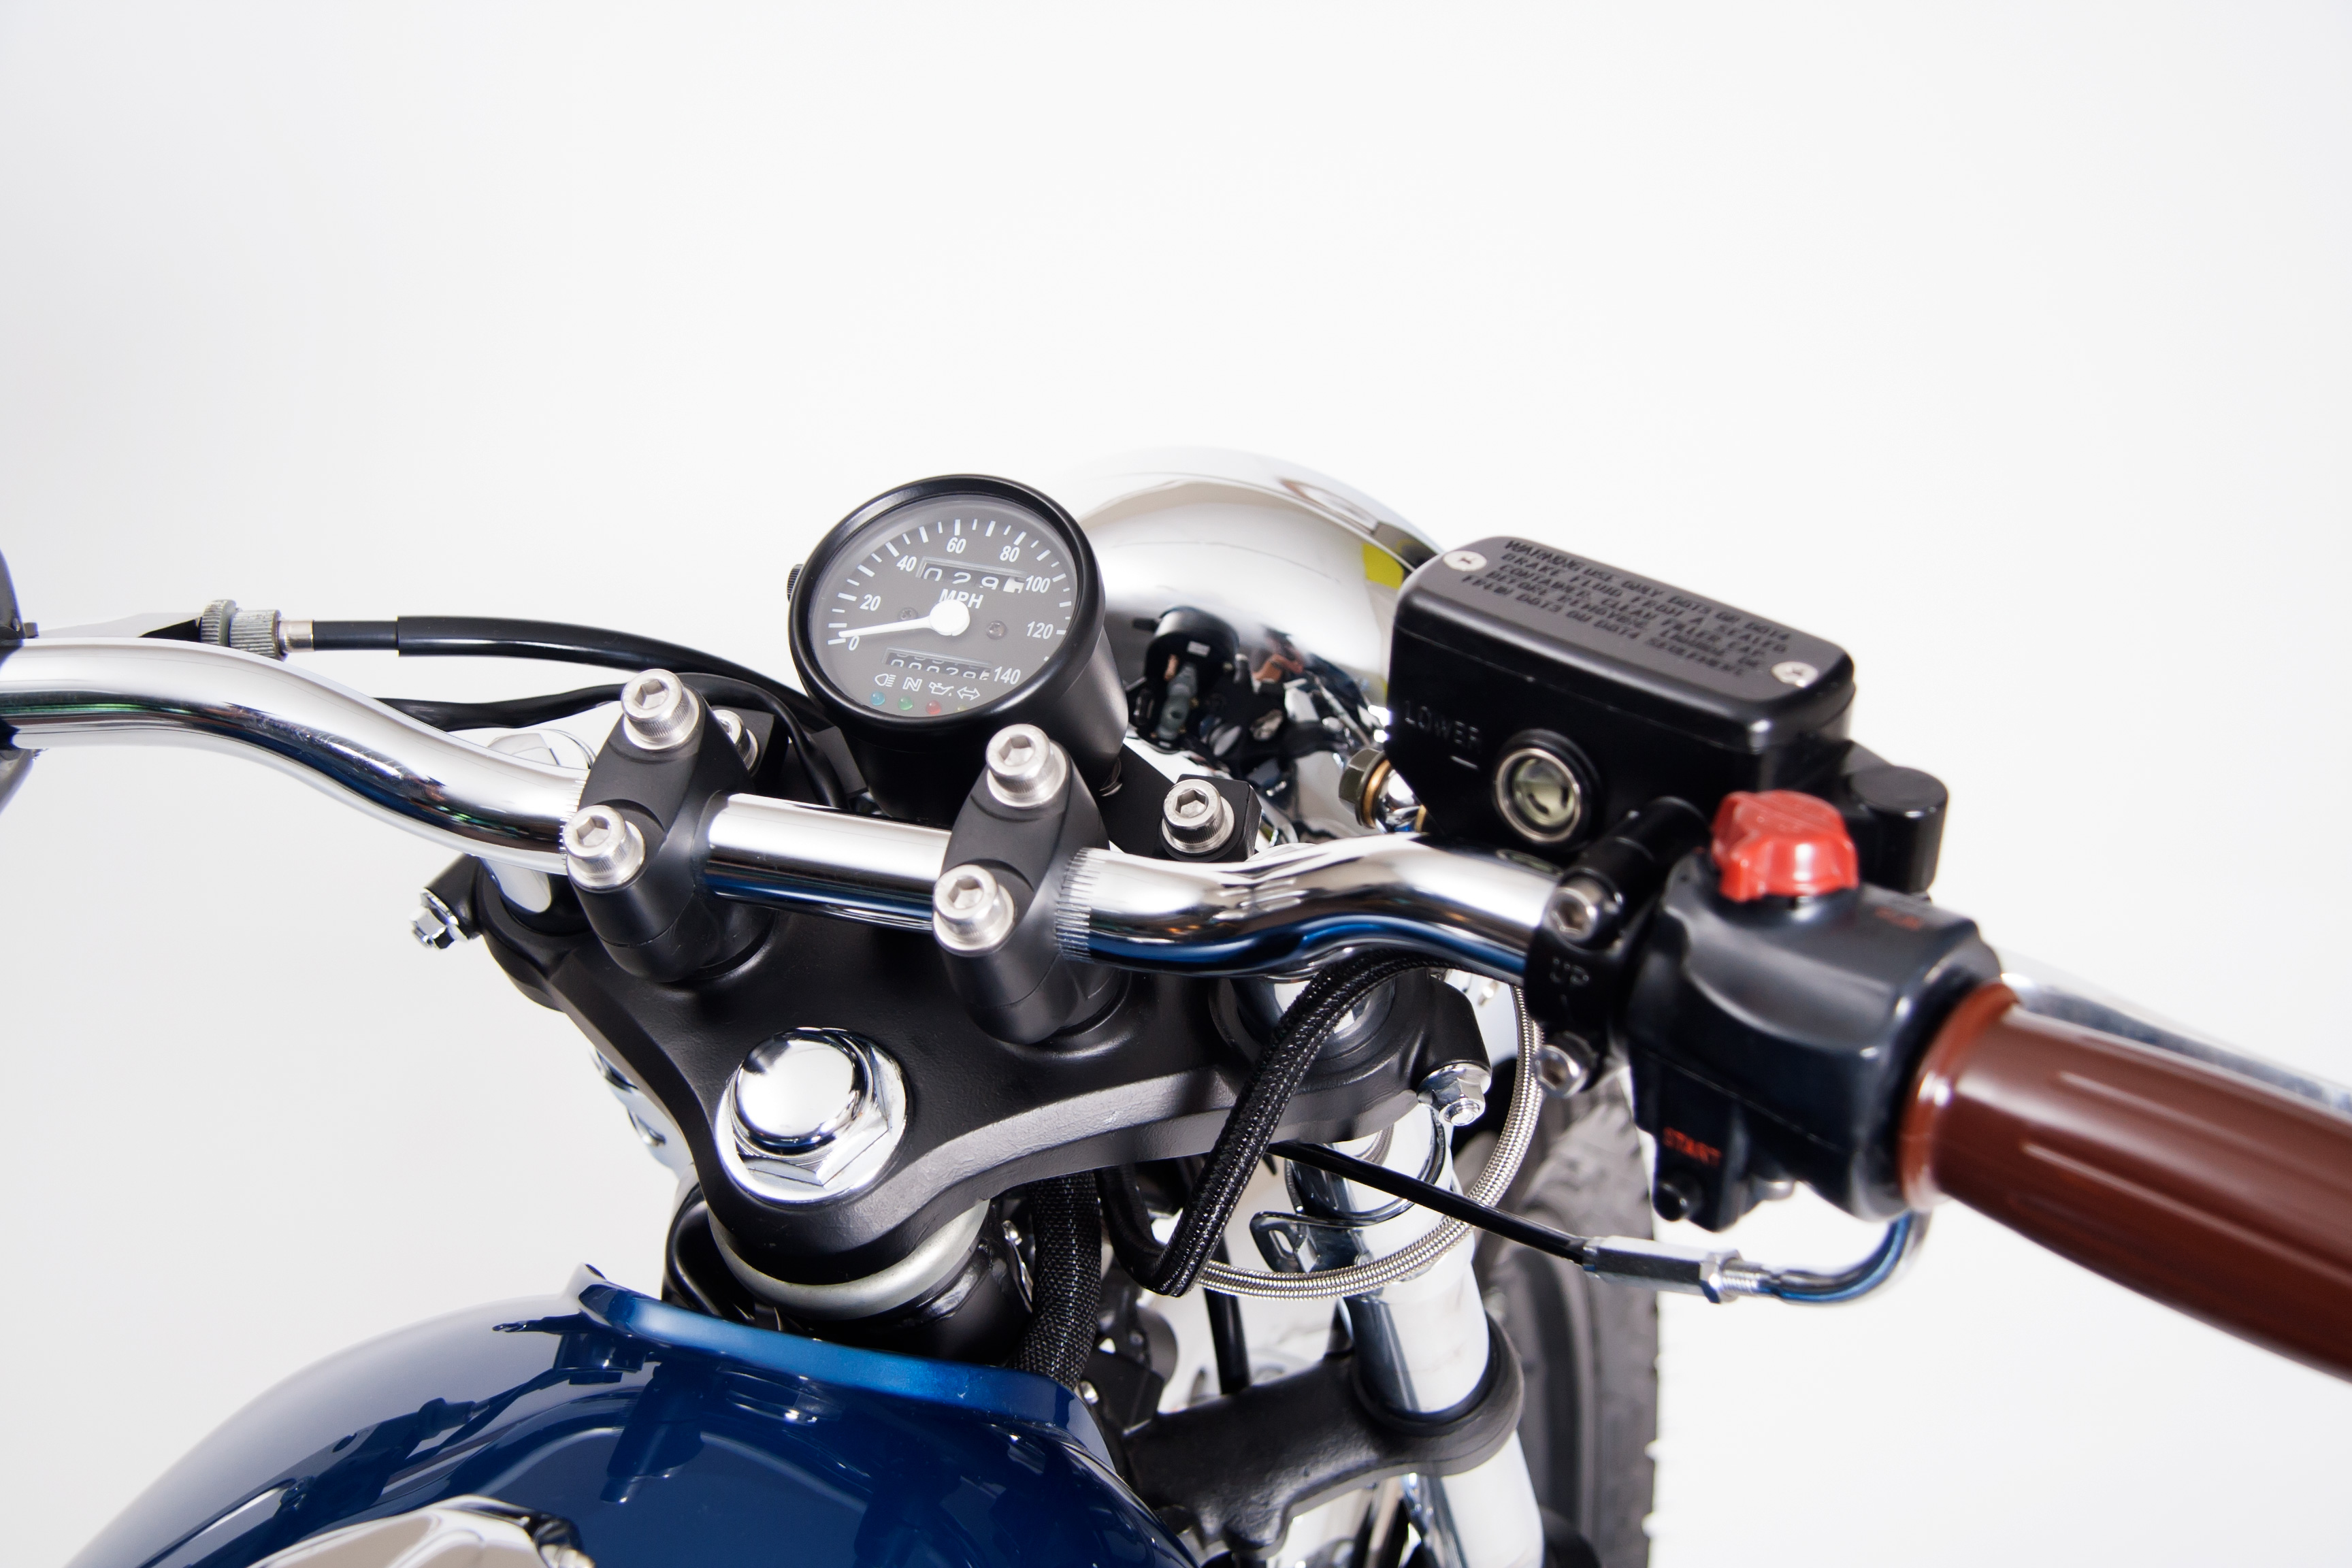 Custom controls and a small speedometer on a 1976 Honda CB360T